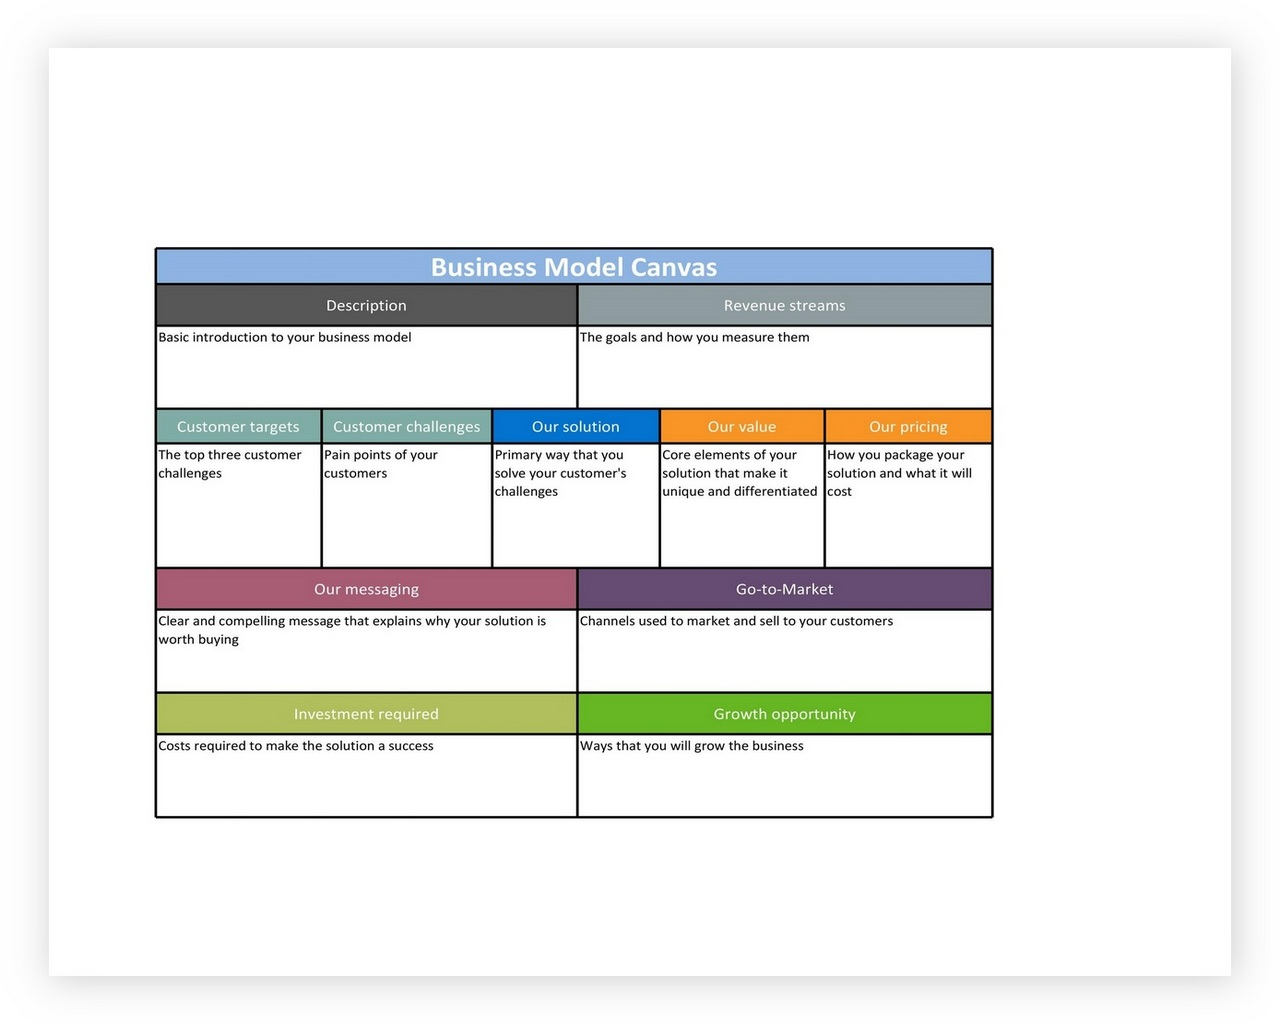 Business Model Canvas Template 07 1